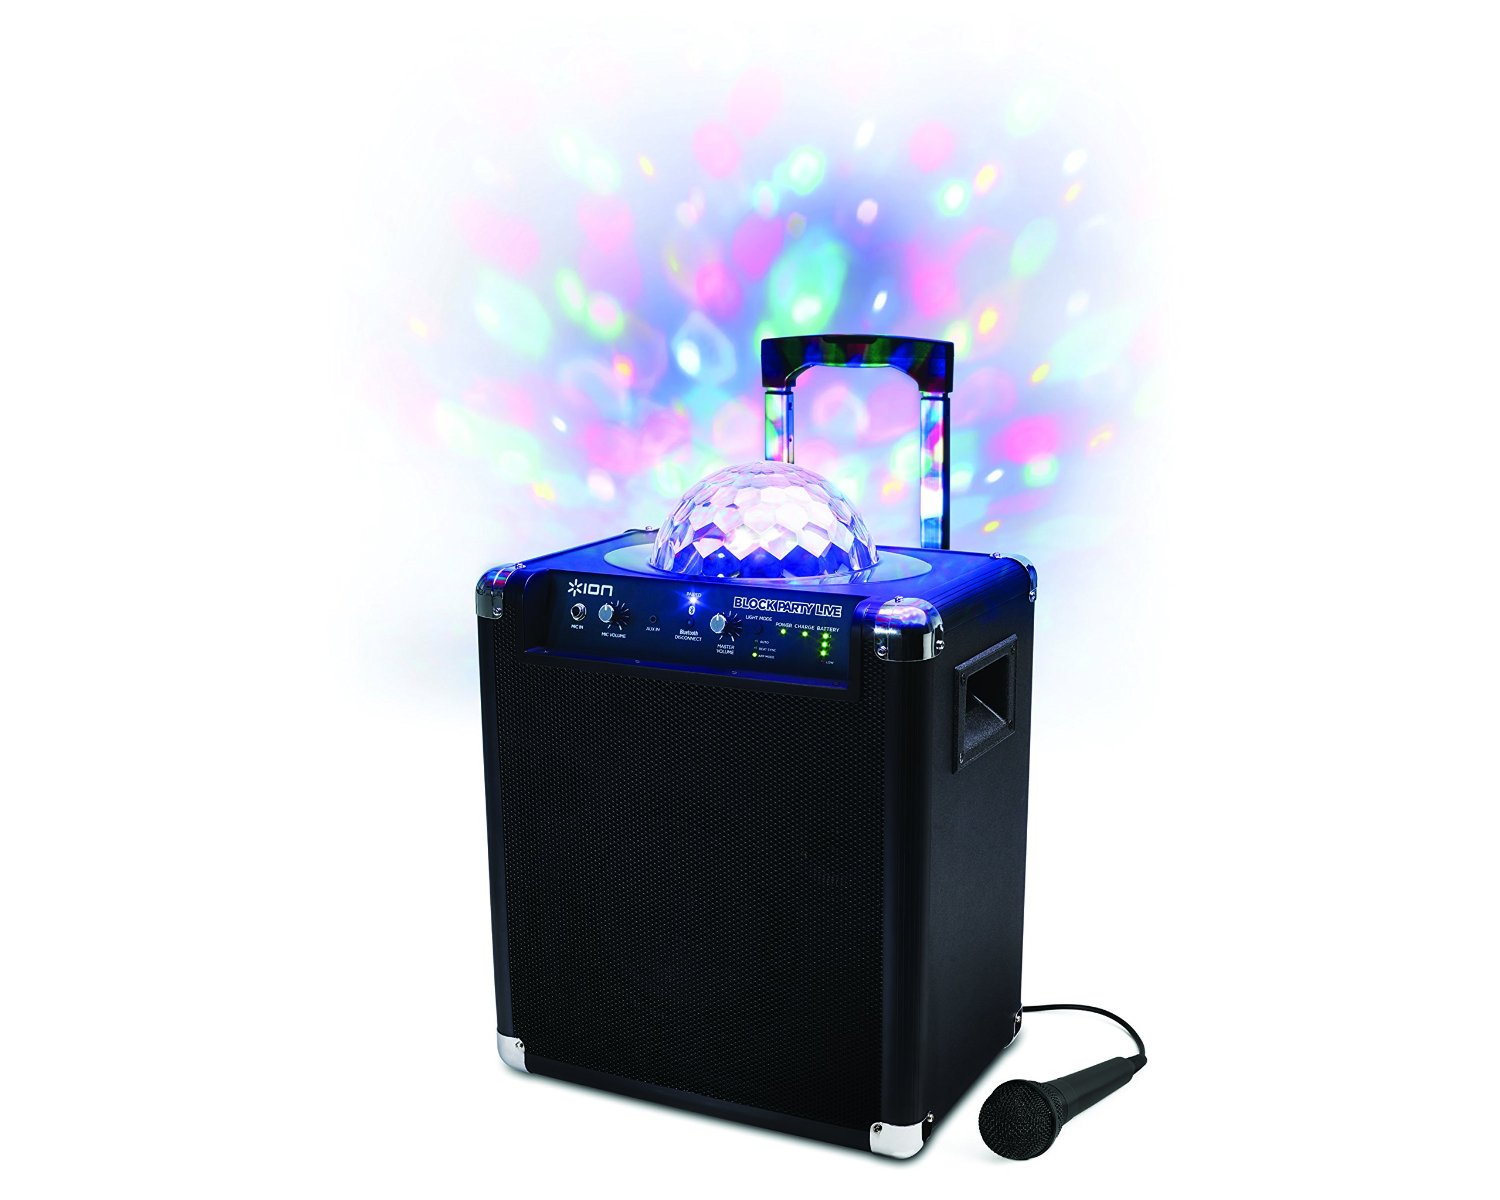 Ion Block Party™ Live Portable Karaoke Speaker System - Party Lights, Bluetooth Enabled, Up to 75 Hours of Music